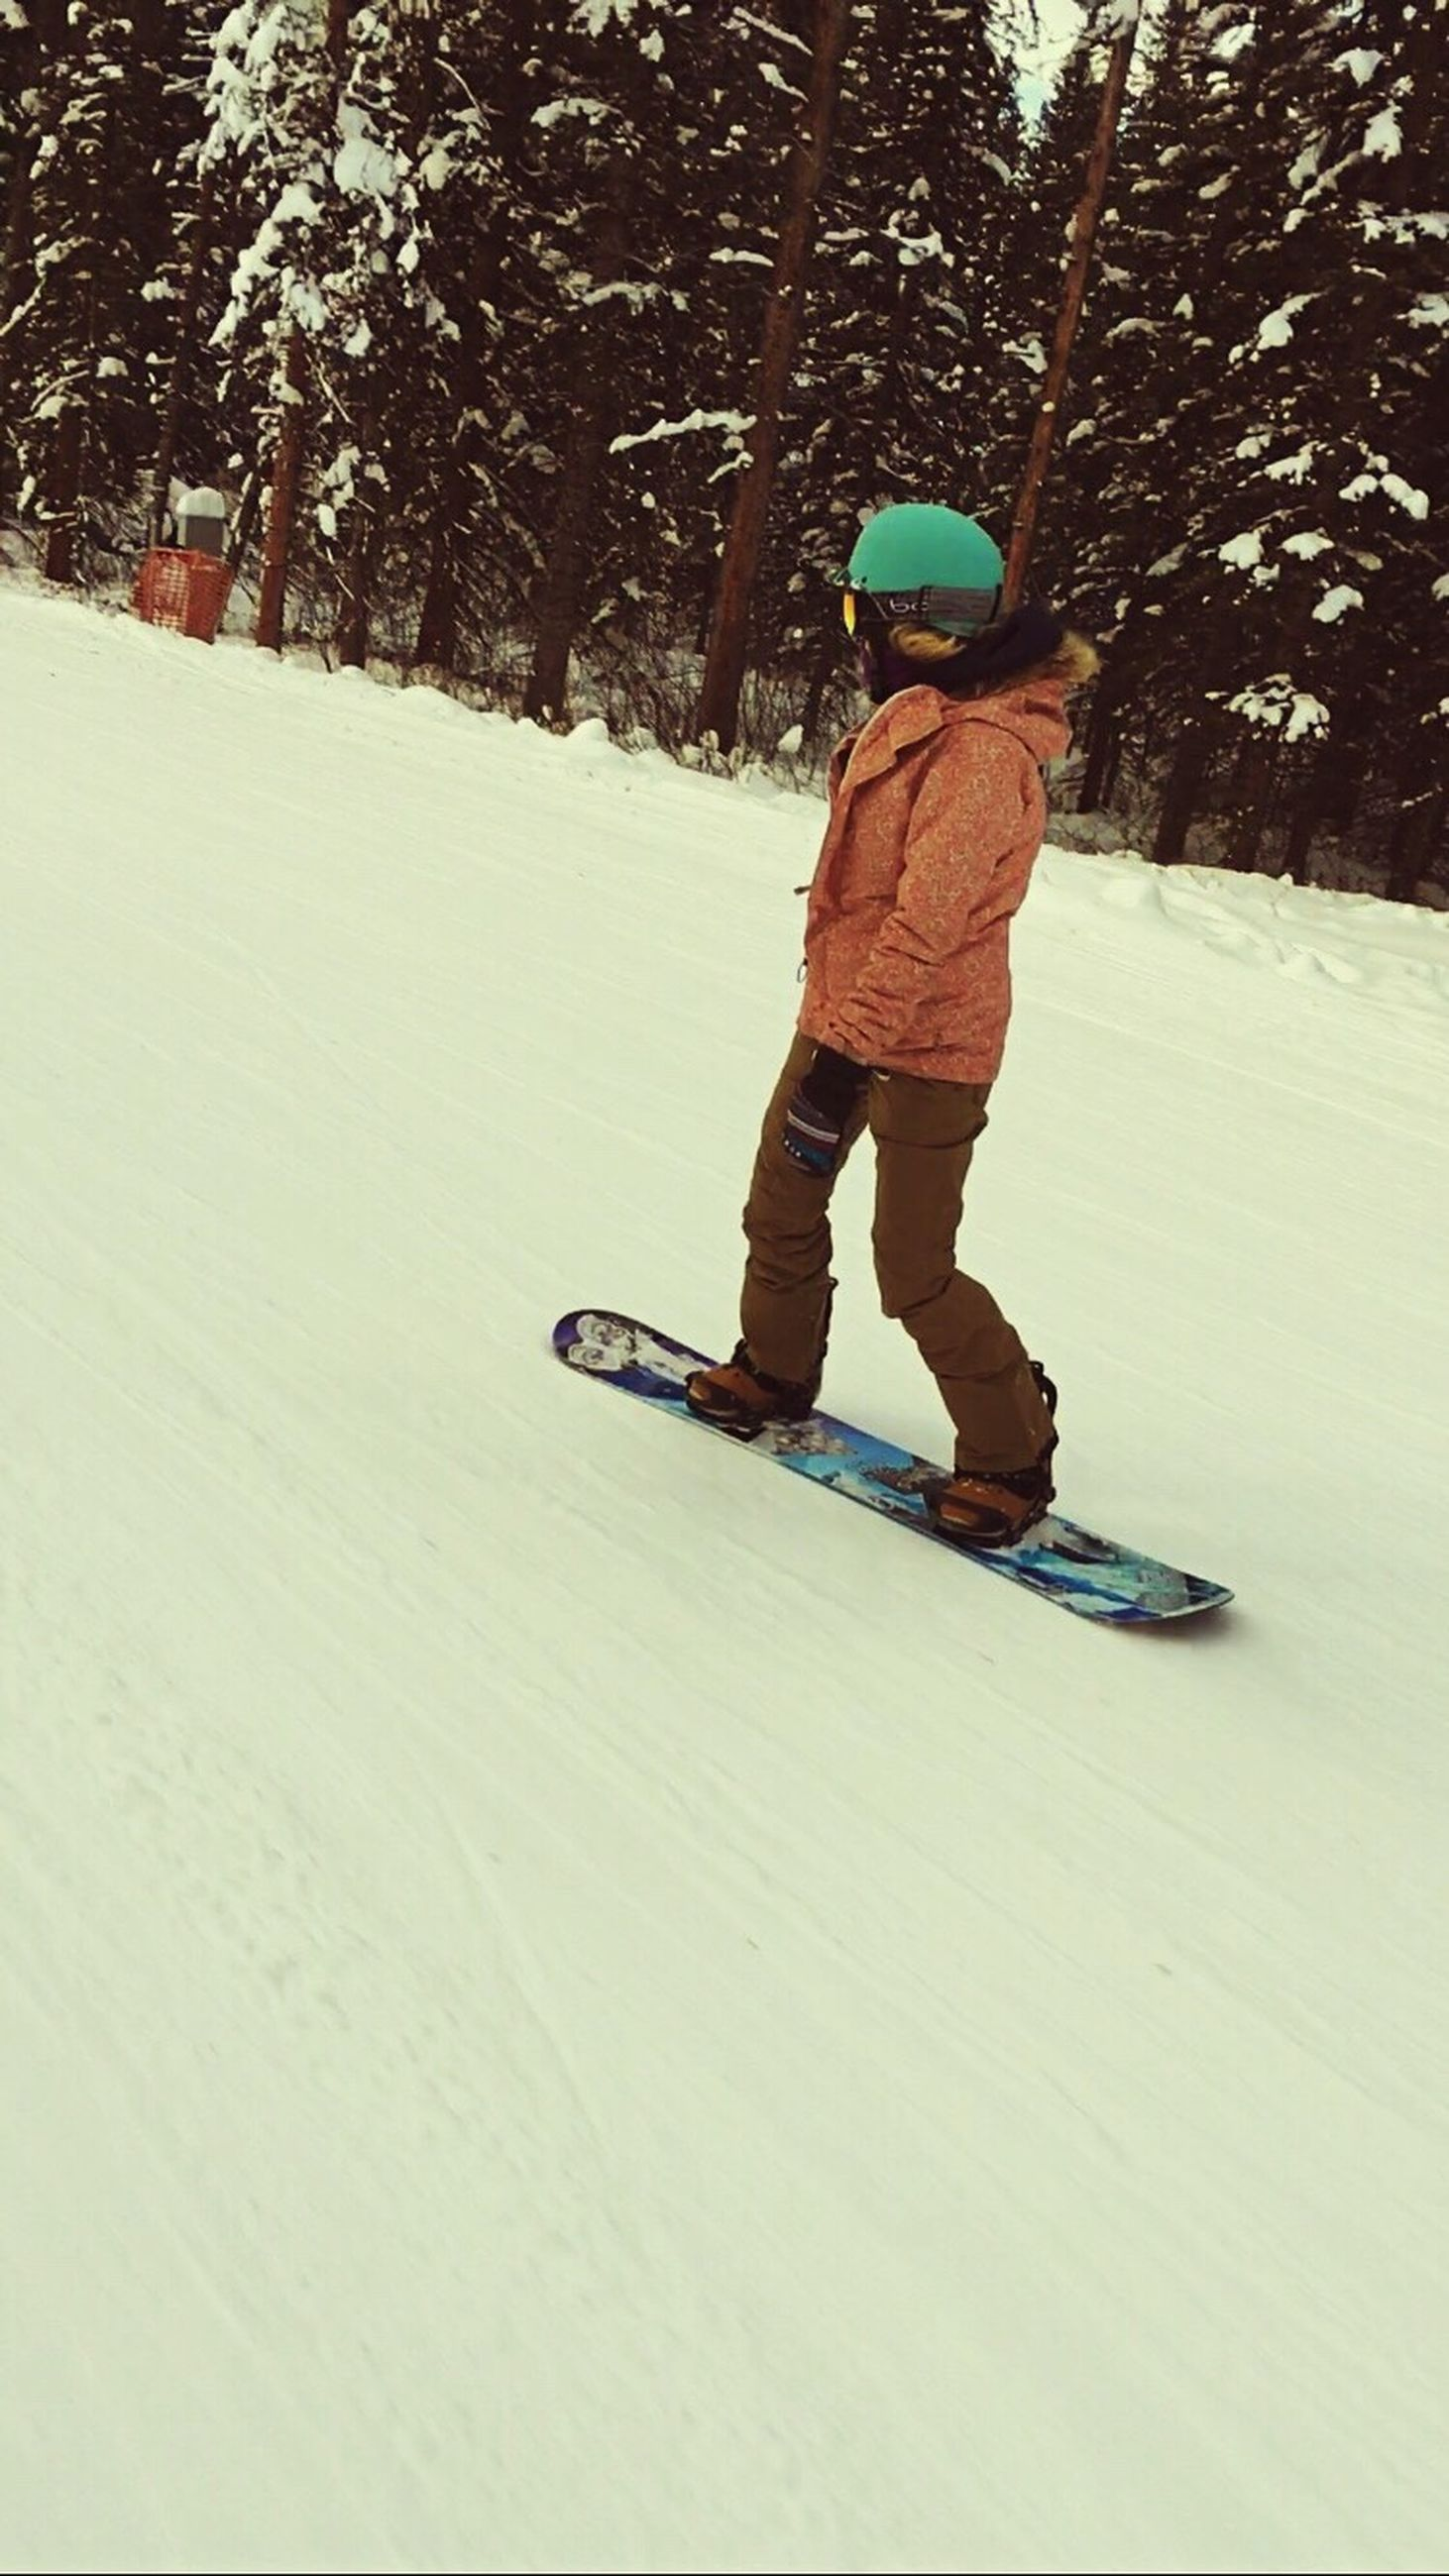 child, full length, winter, cold temperature, sport, childhood, snow, males, one person, one boy only, boys, warm clothing, leisure activity, knit hat, children only, winter sport, people, snowboarding, adventure, day, outdoors, ski goggles, real people, ski holiday, vacations, sports ramp